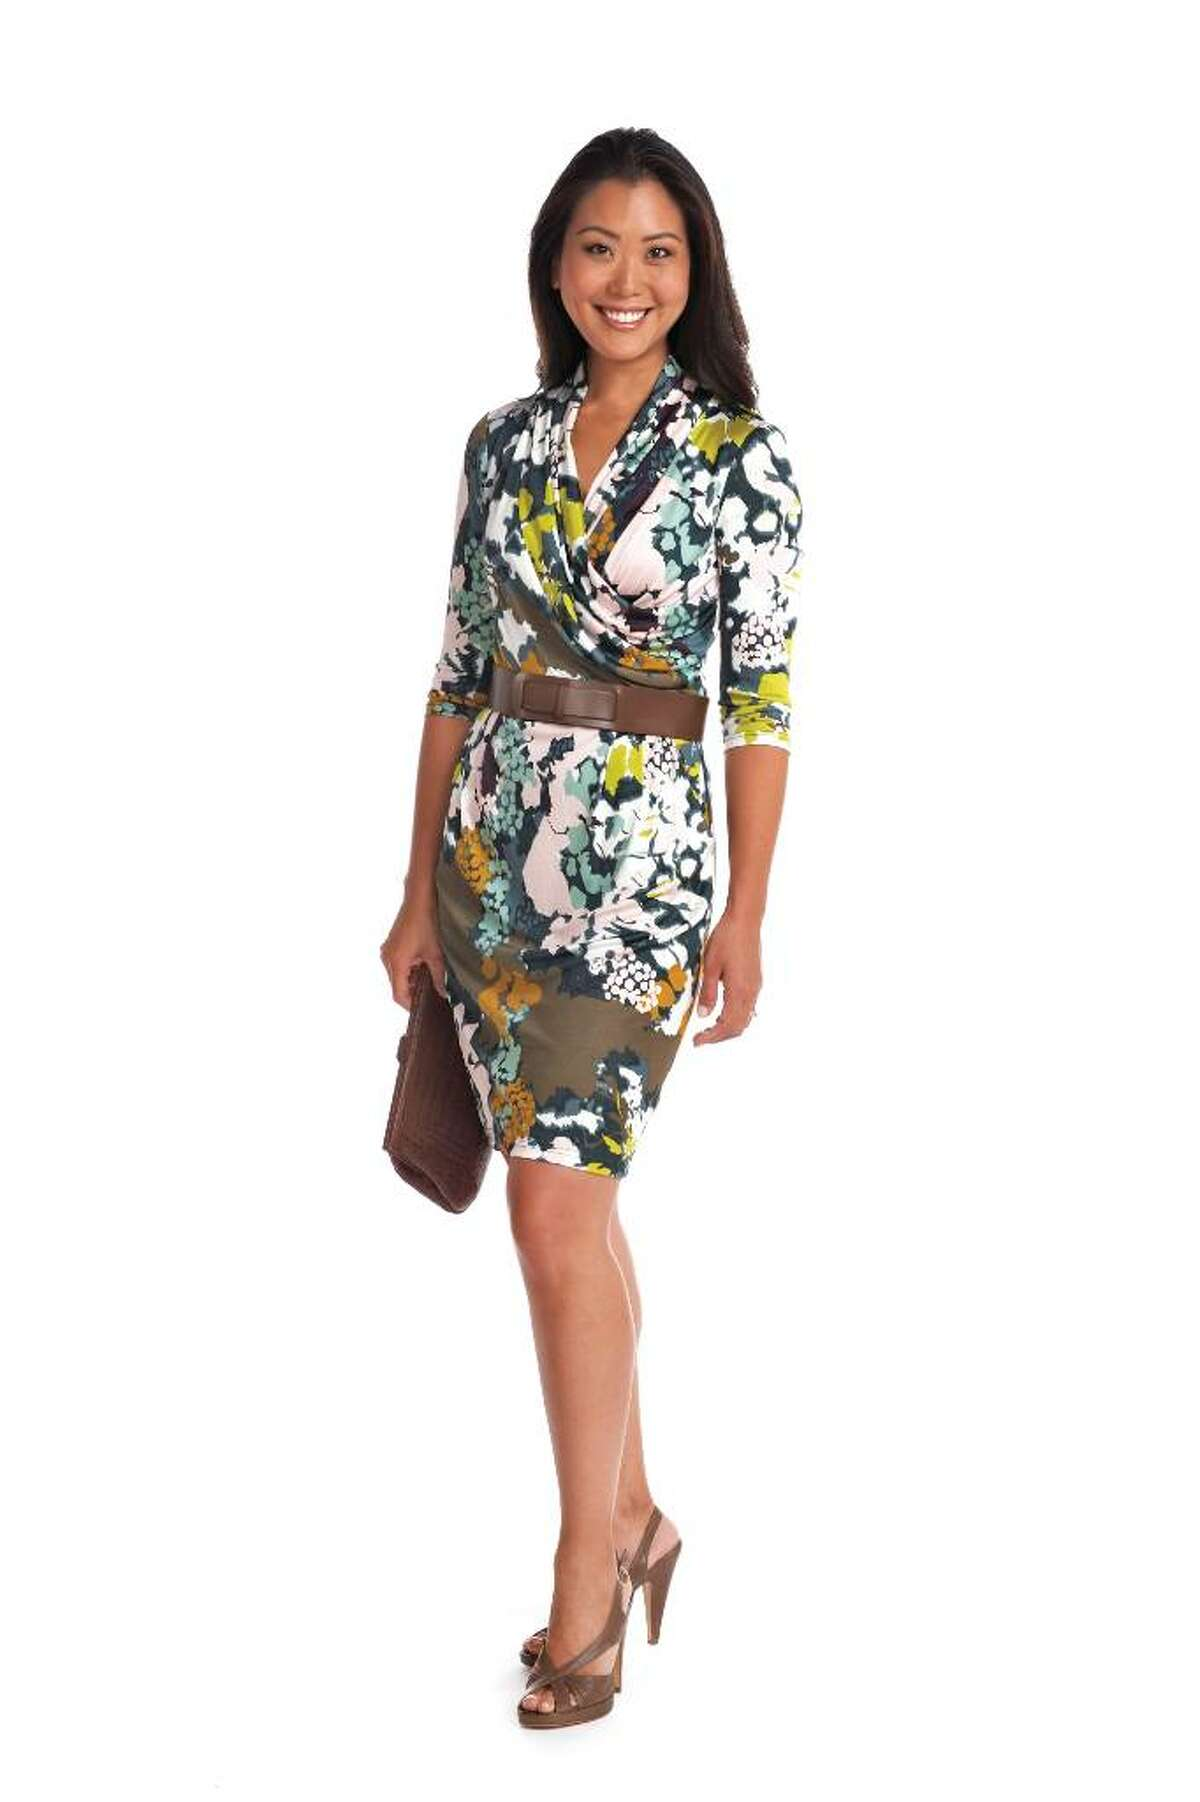 Susie is a makeup artist and green cosmetics entrepreneur whose whimsical style was getting in the way of her being taken seriously. This dress sends the message she?s a serious businesswoman and yet an individual. The print is not over the top, thanks to the brown and taupe accessories.